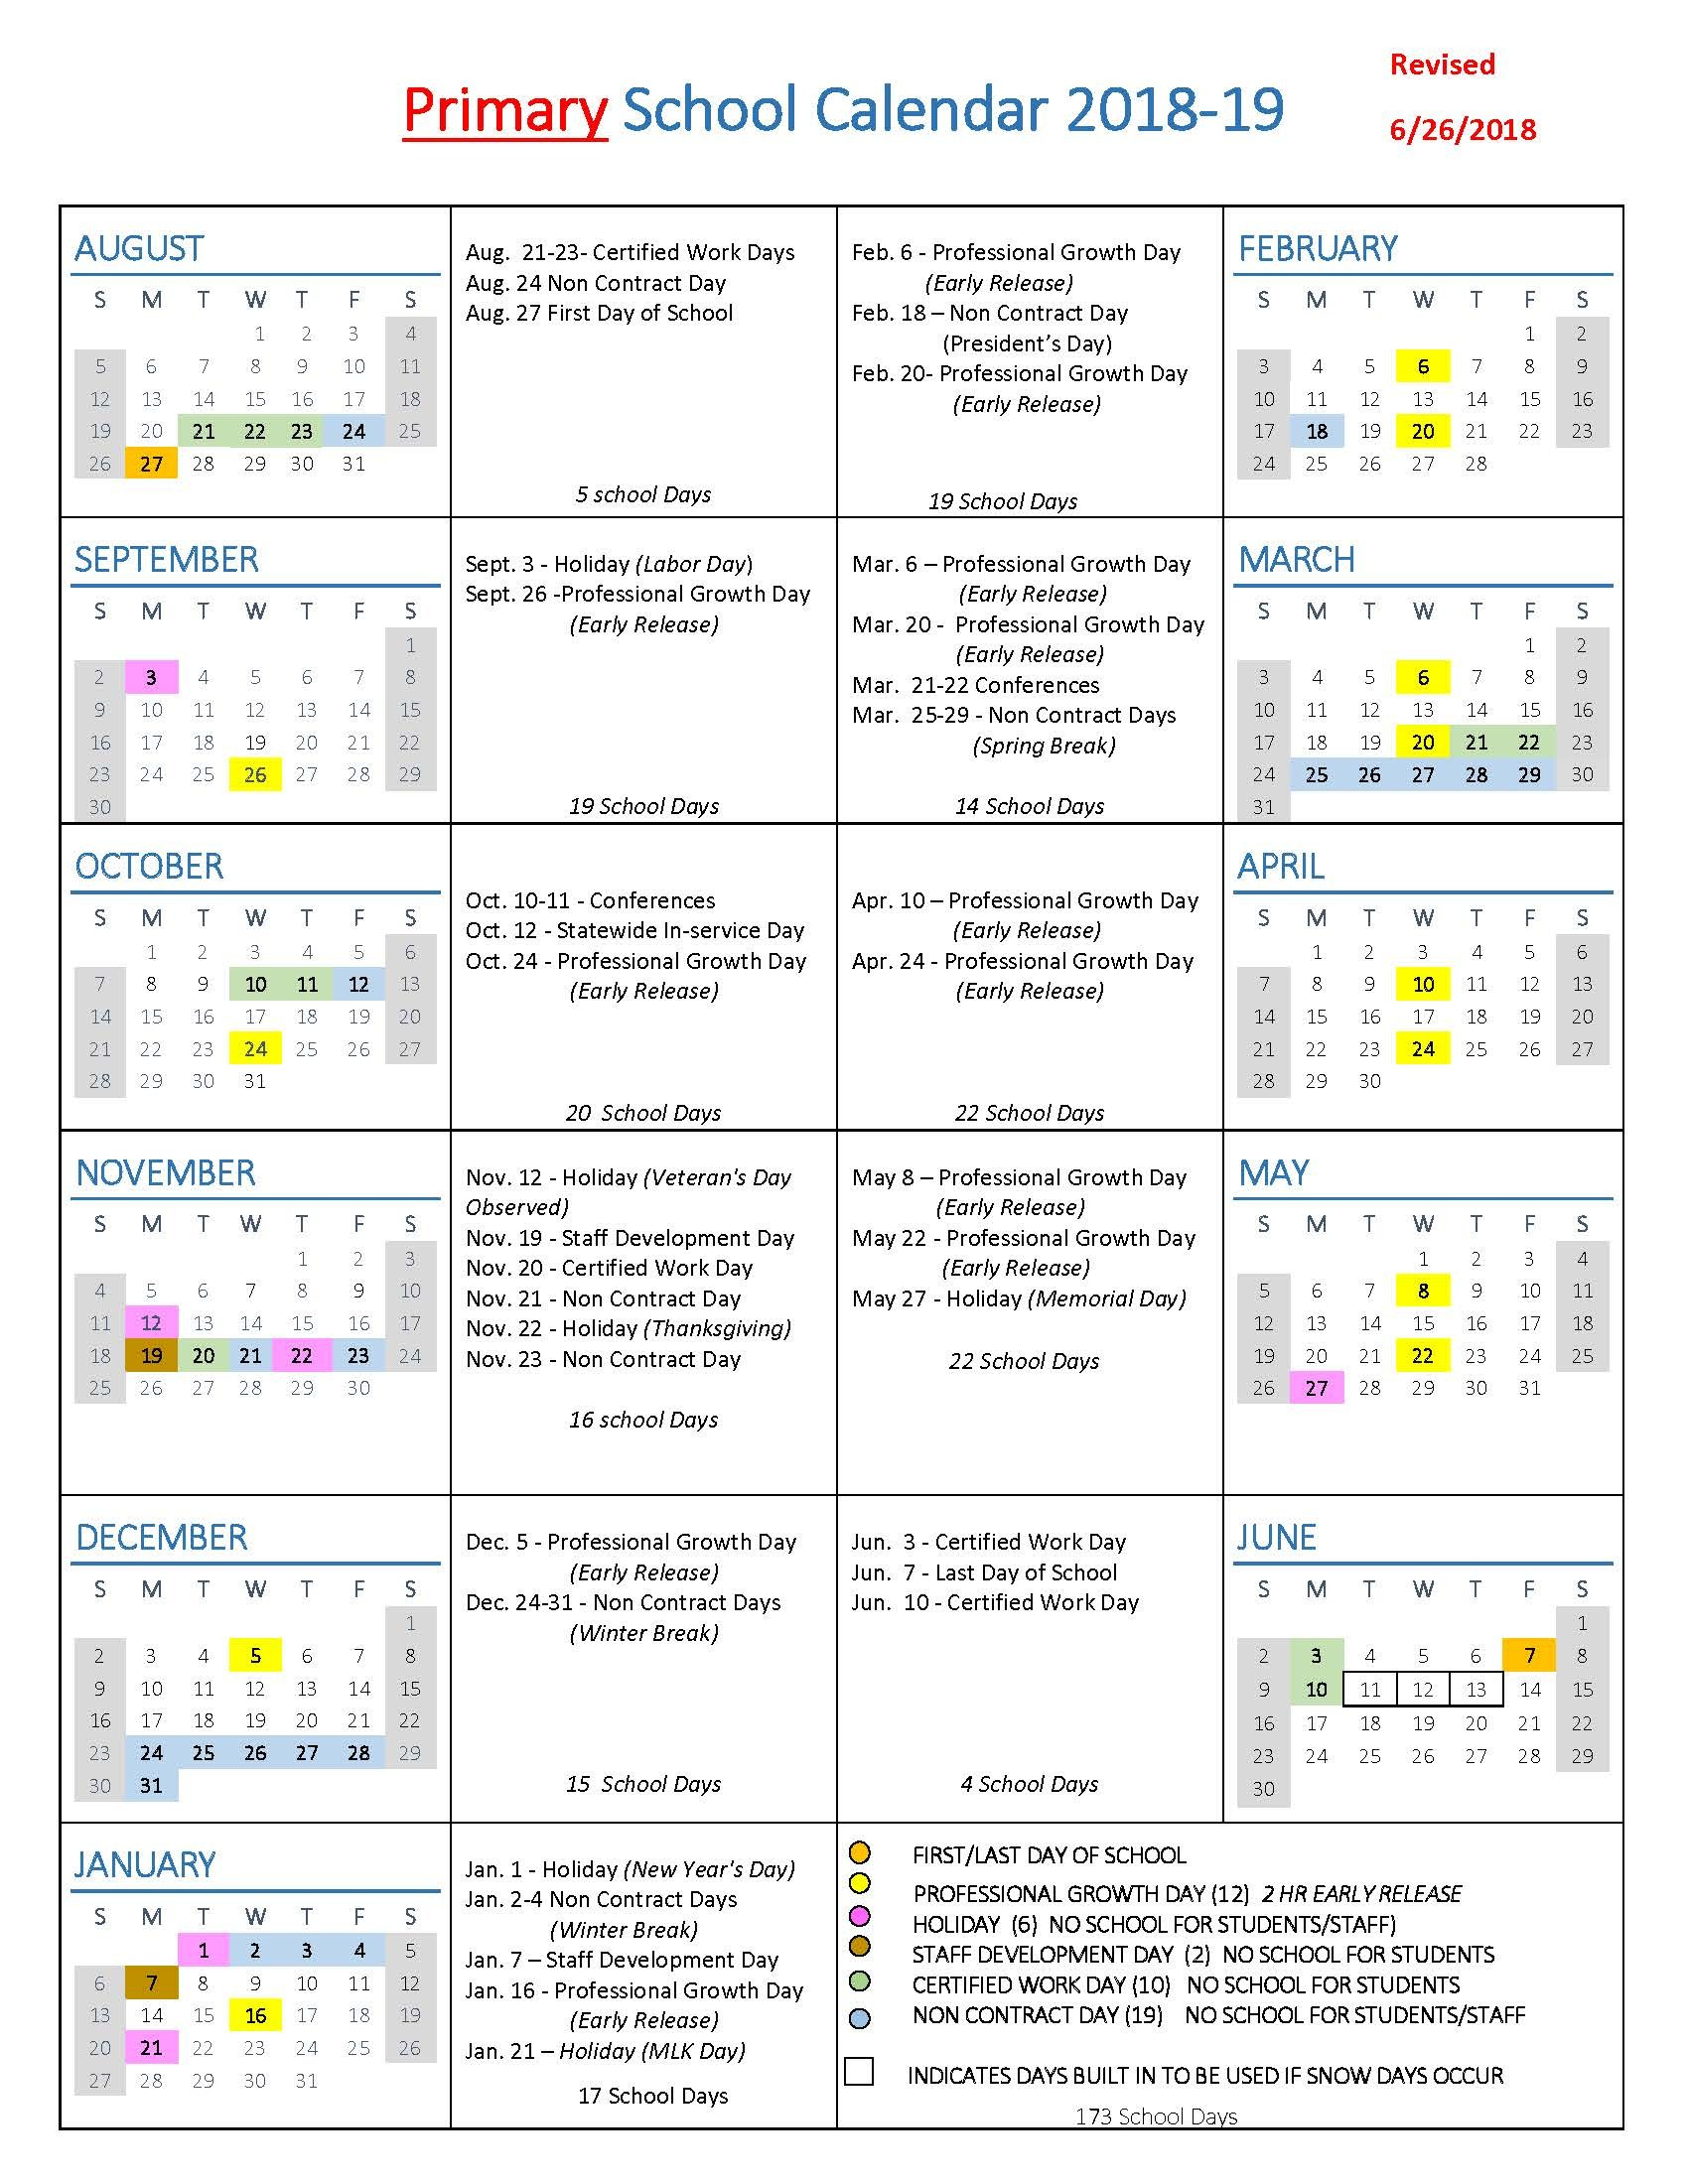 Gujarati Calendar March 2018 Más Reciente School Year Calendars School Year Calendars Of Gujarati Calendar March 2018 Más Recientemente Liberado 2018 Navaratri Festival In India Essential Guide